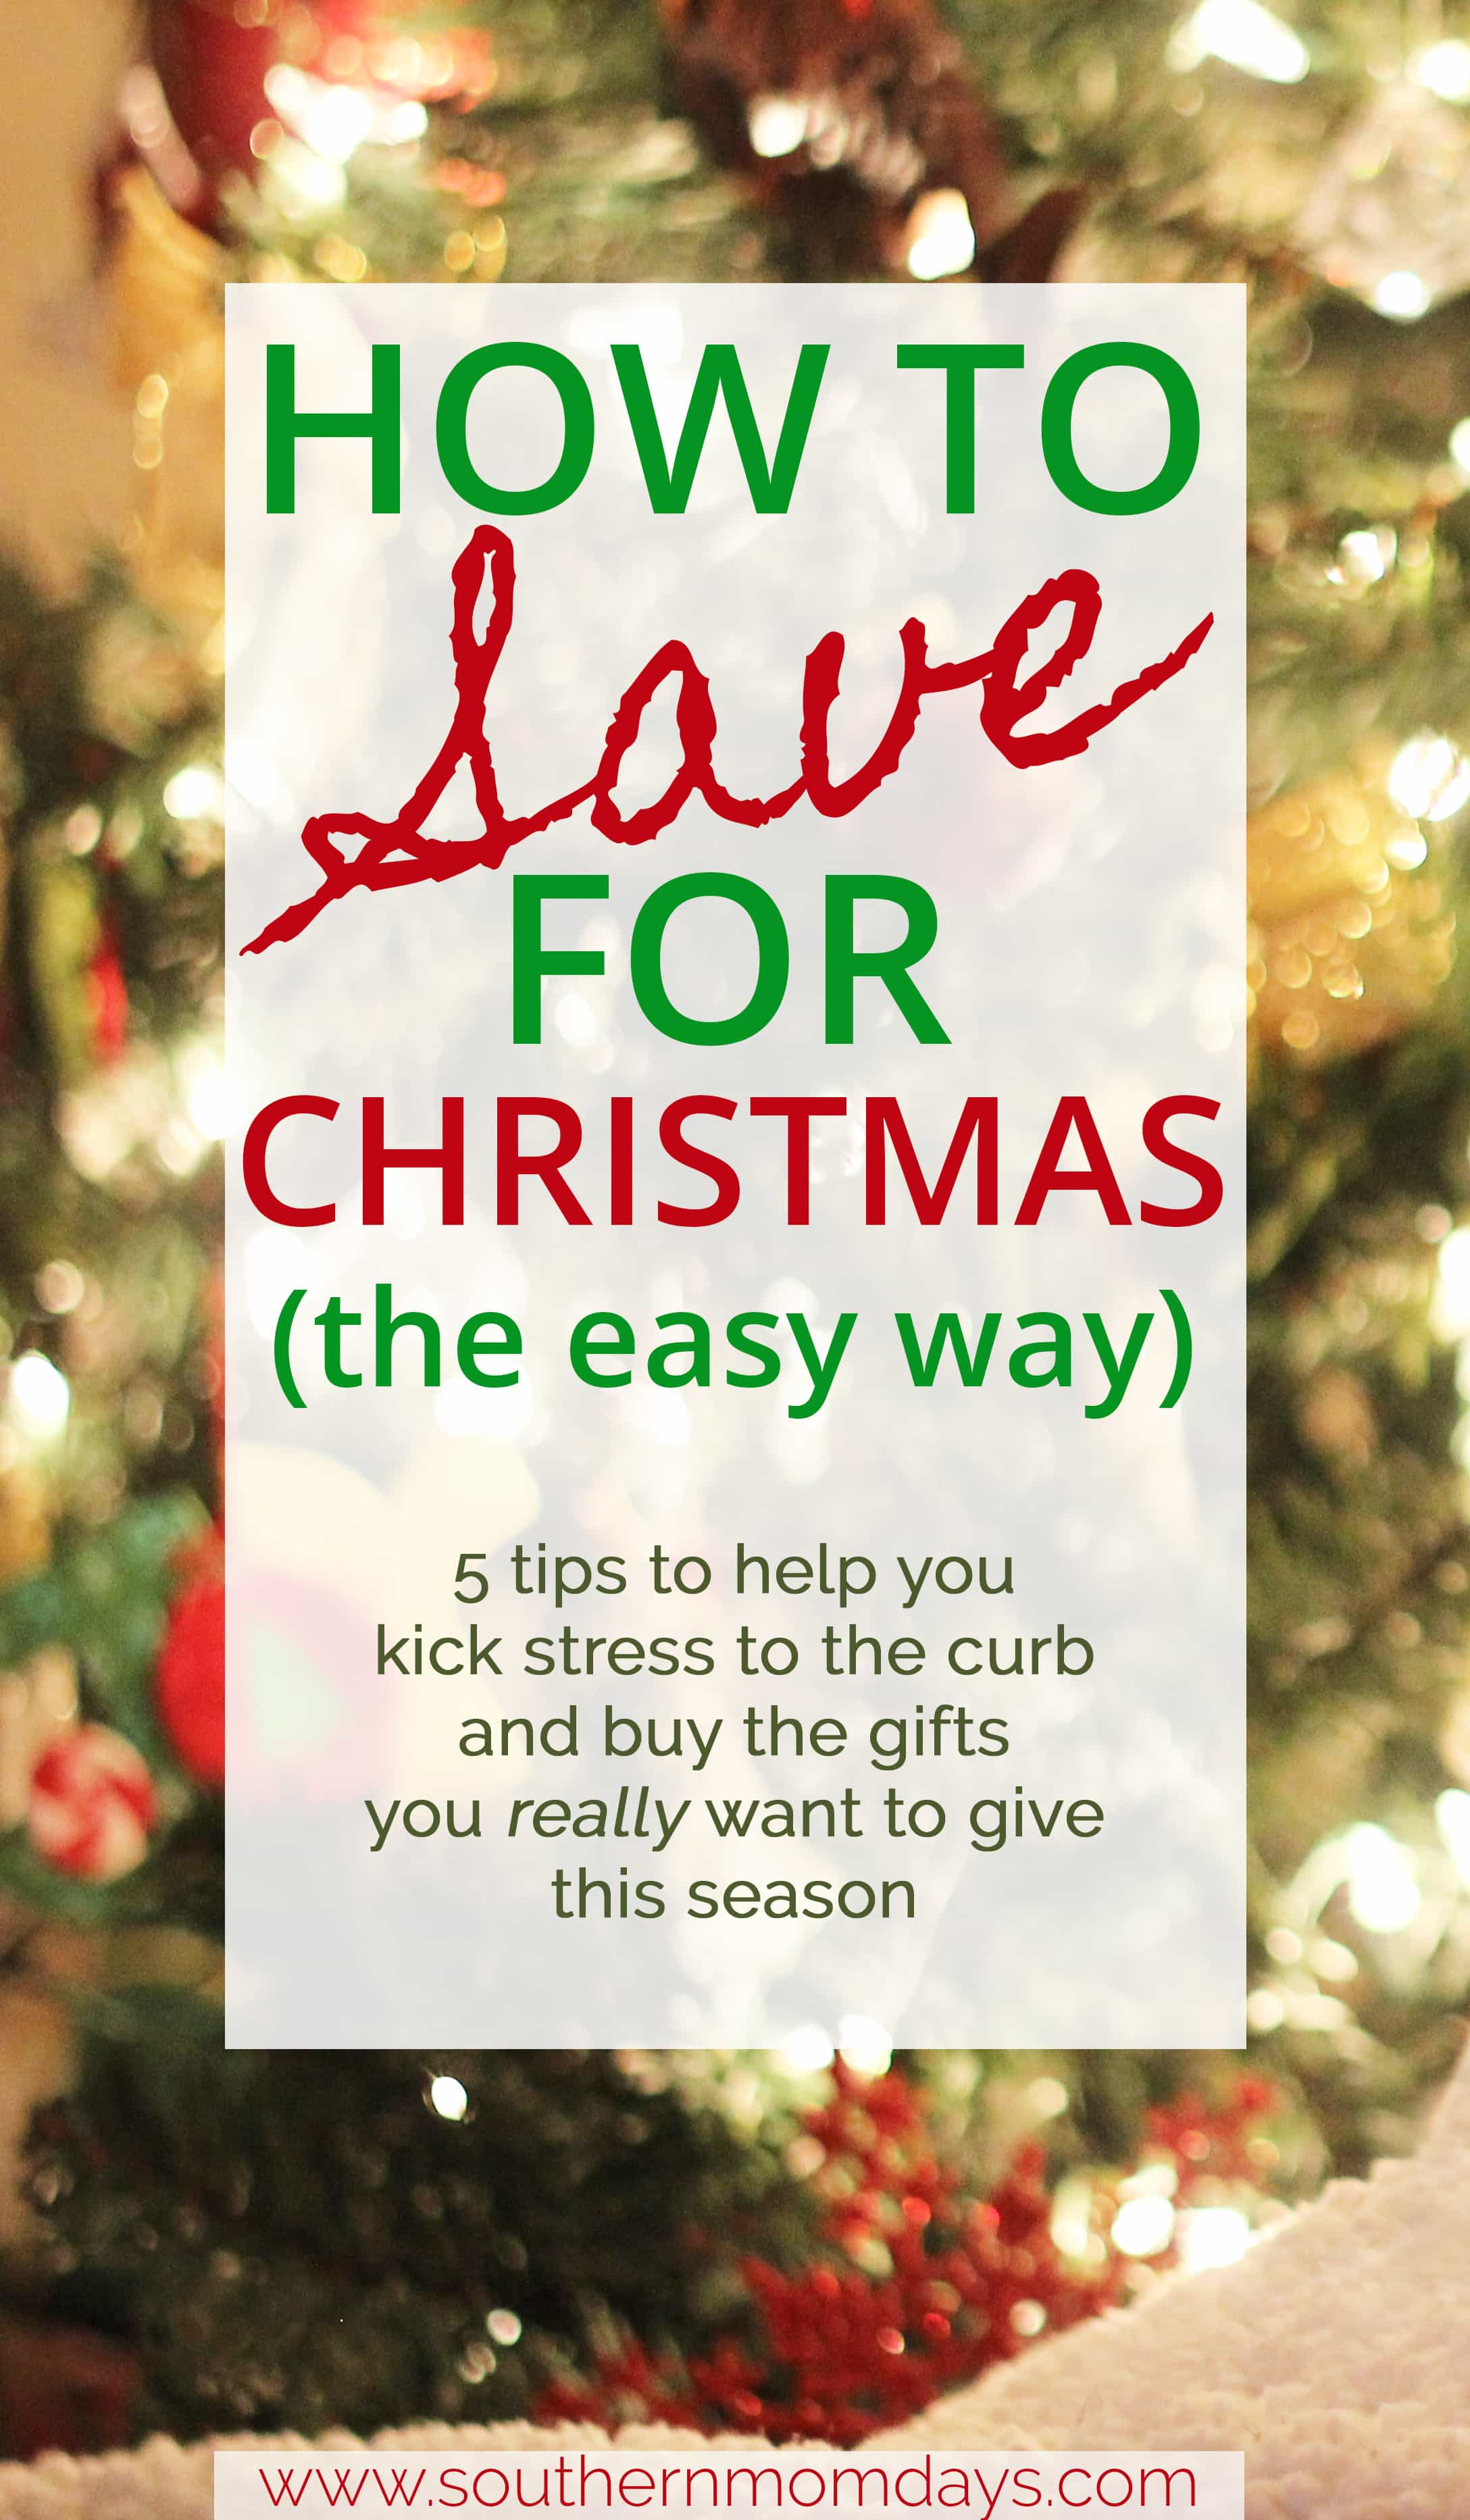 How to Save for Christmas (the Easy Way) featured in a holiday budget guide on the Southern Momdays blog